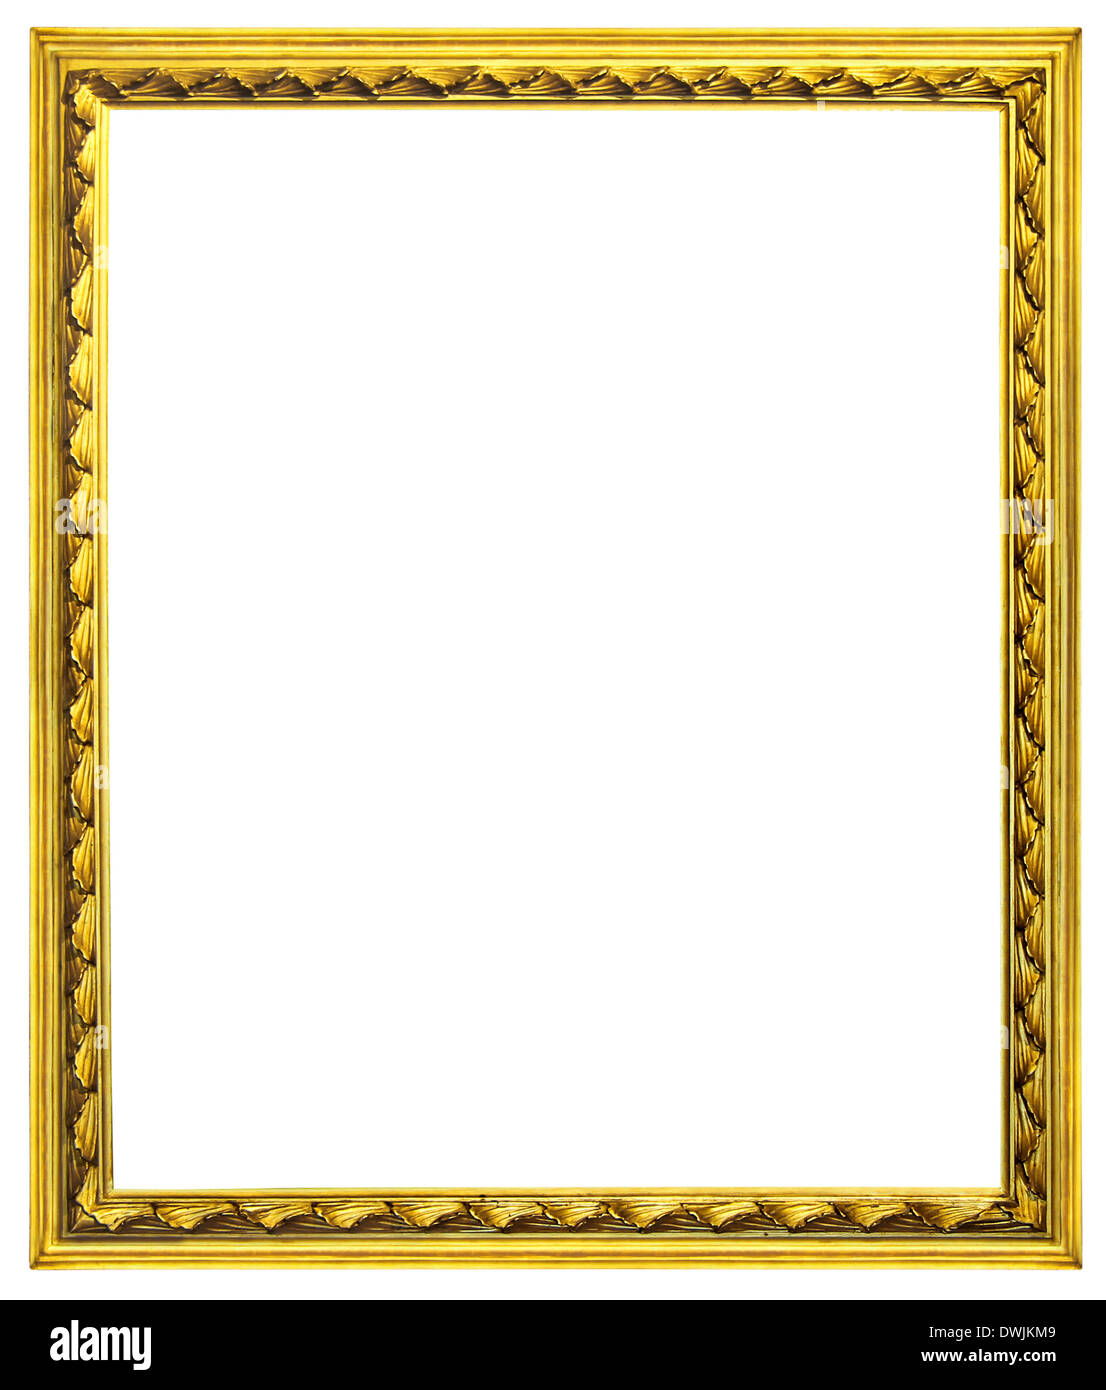 Wooden Frames Stock Photos & Wooden Frames Stock Images - Alamy